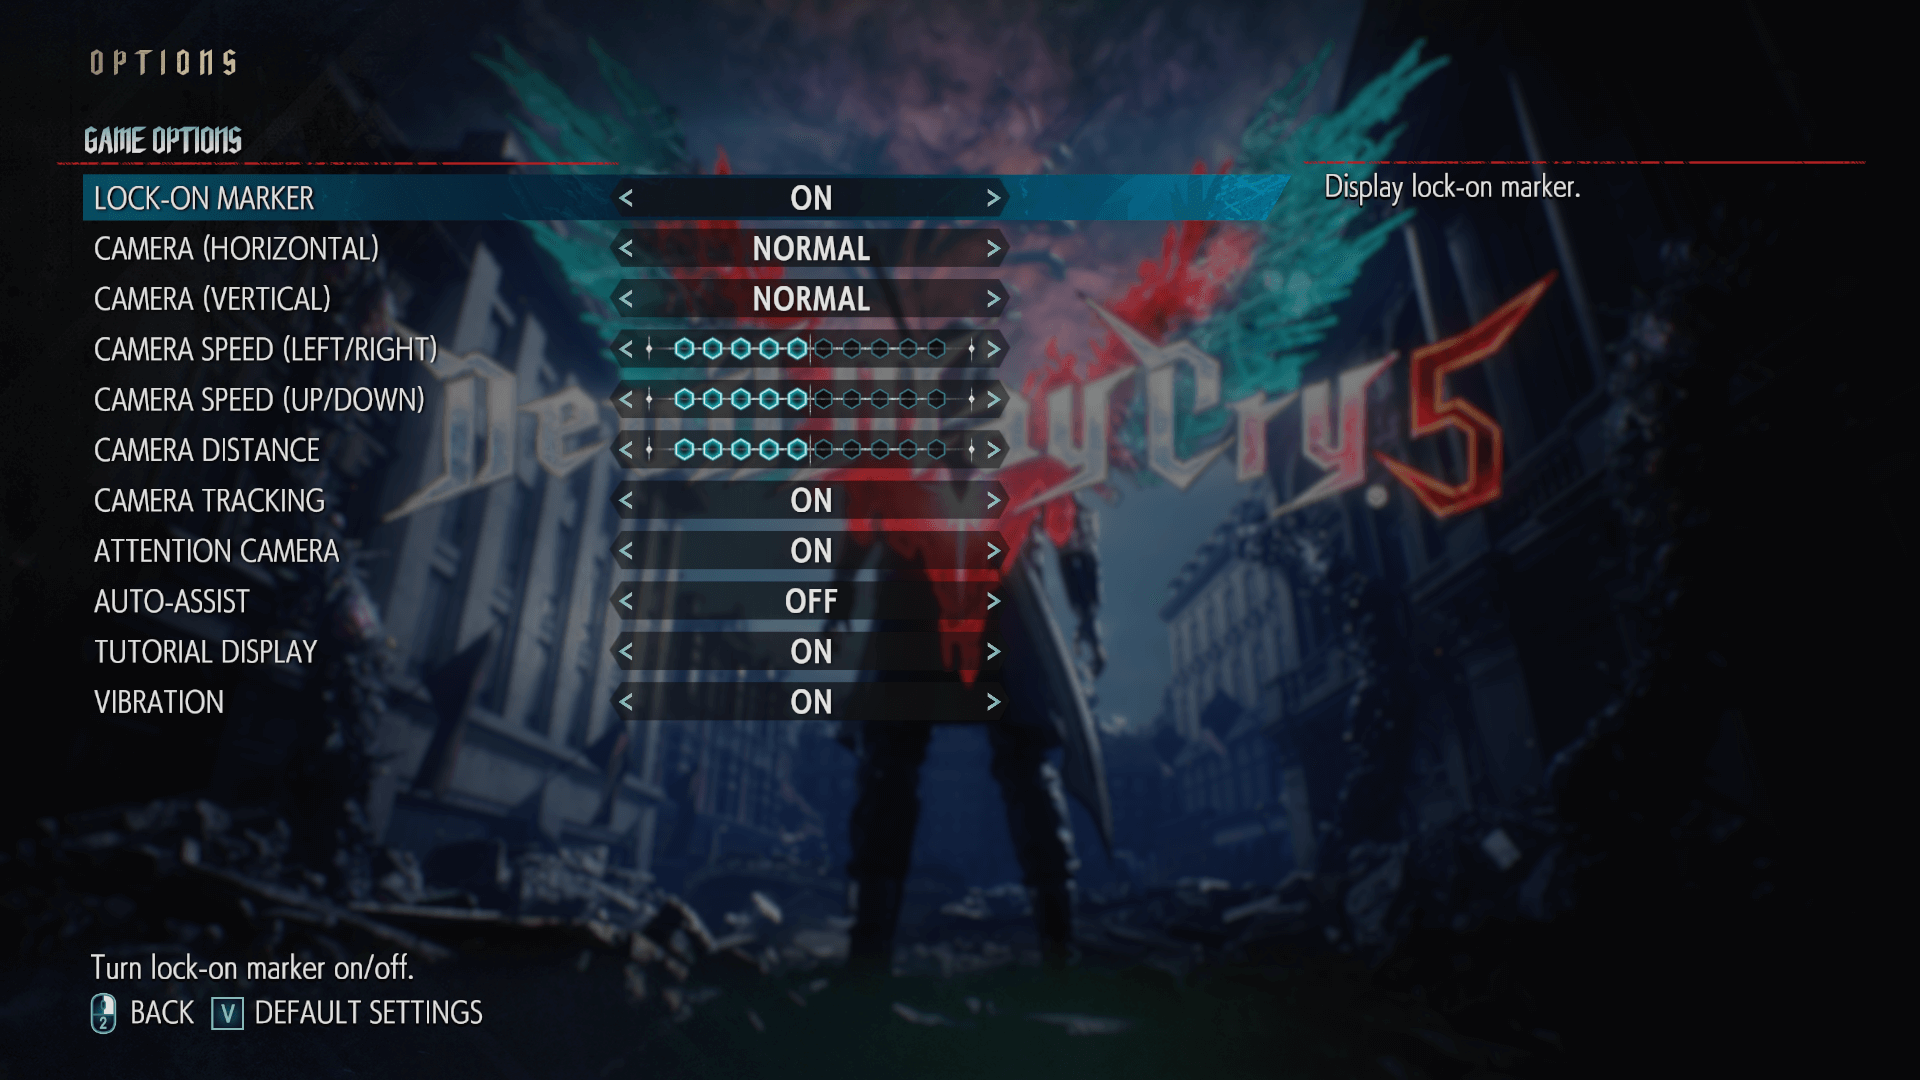 Game options screenshot of Devil May Cry 5 video game interface.